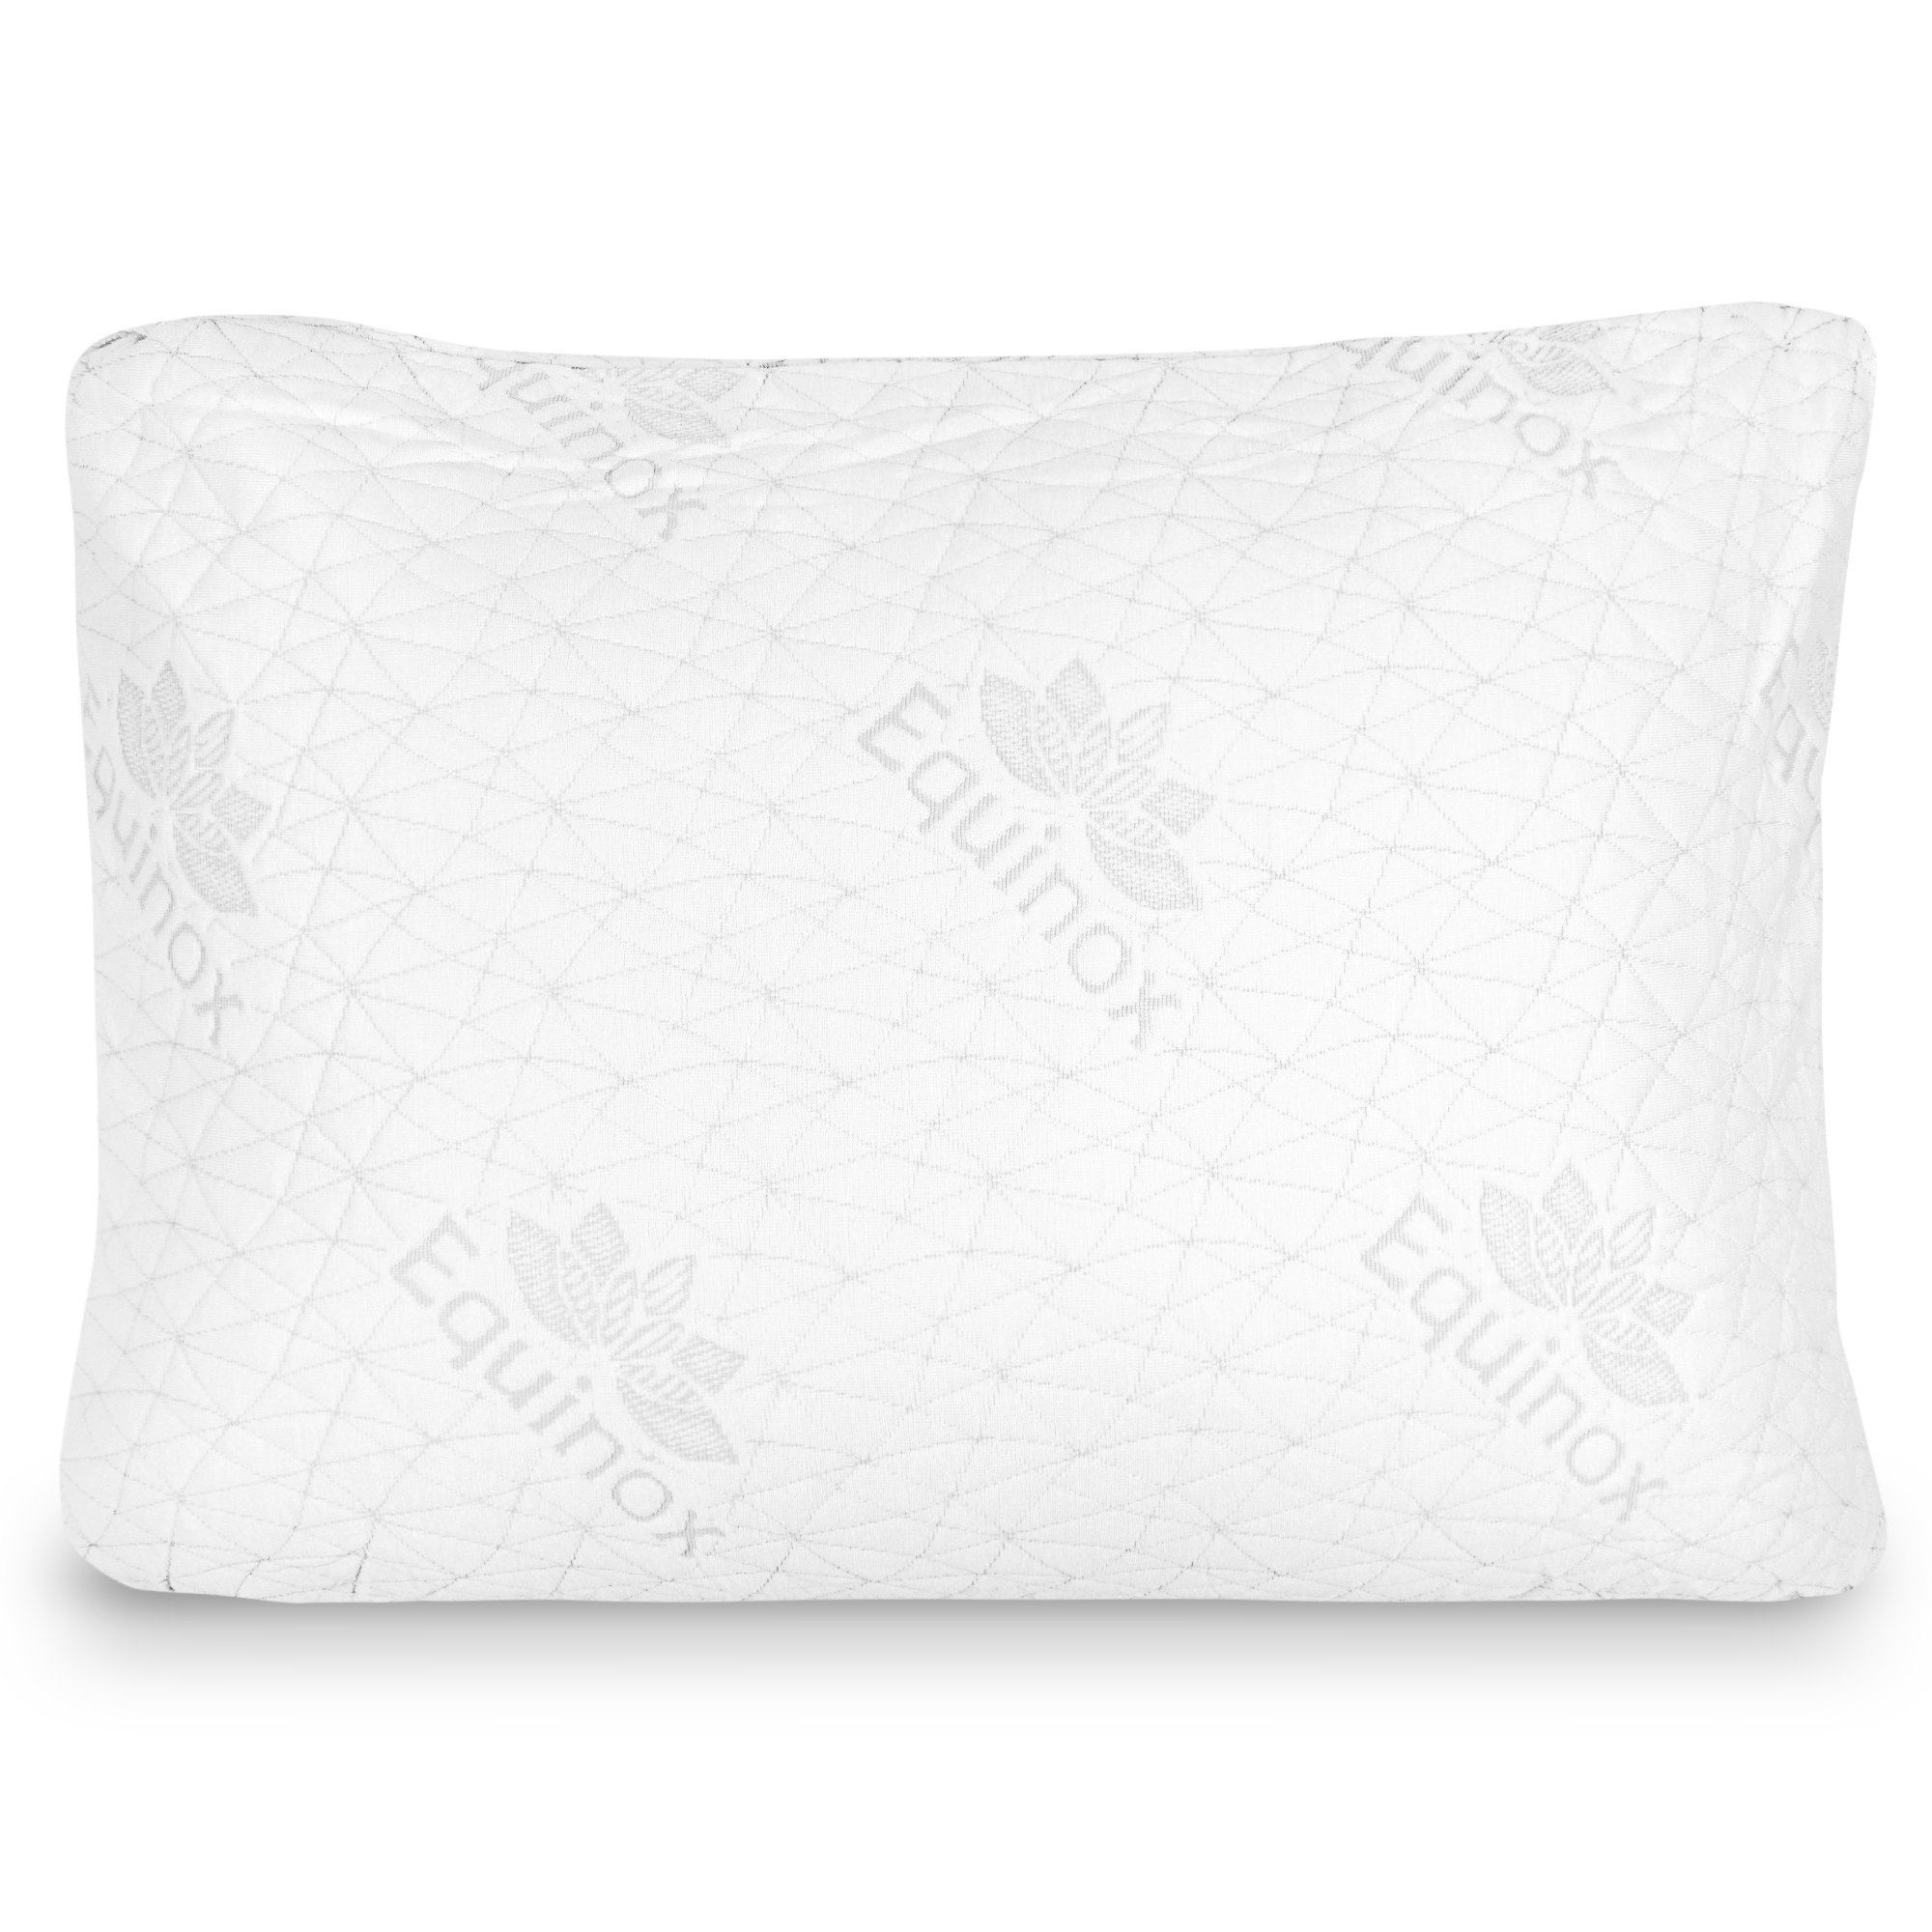 Equinox Premium Shredded Memory Foam Pillow (20'' x 27'') - Queen Sized Memory Bed Pillow, Removable & Washable Soft Zip Bamboo Cover, Luxury Padded Design, White